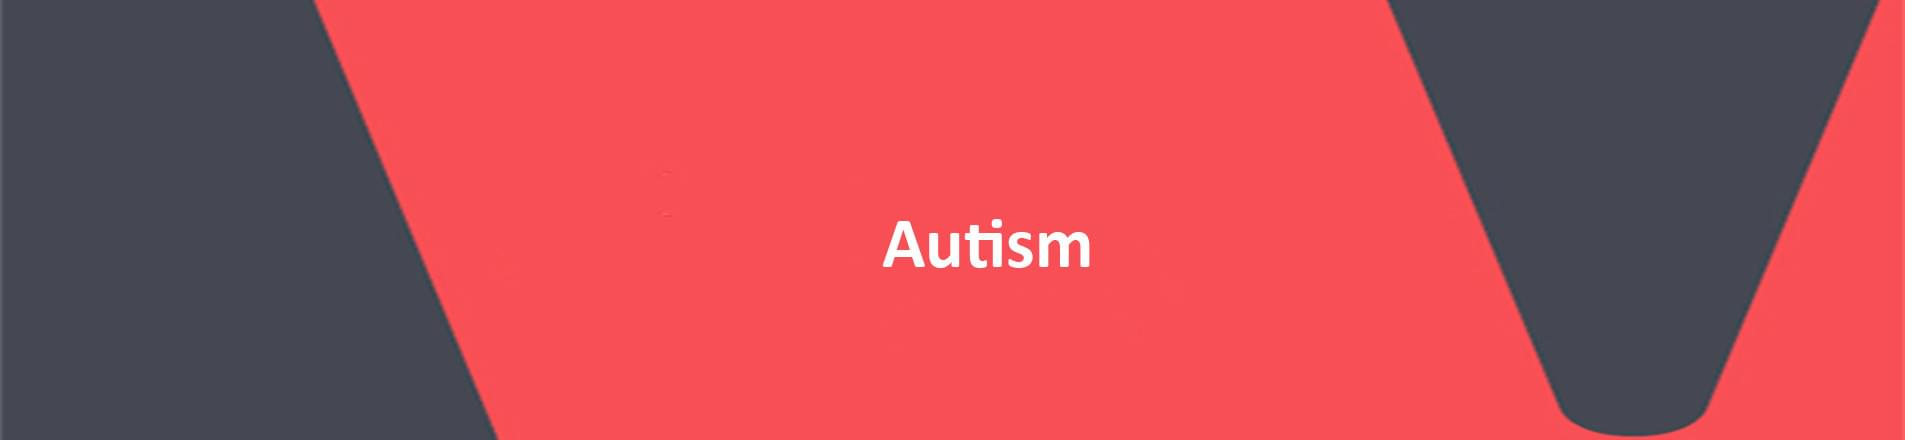 The word autism on red VERCIDA branded background